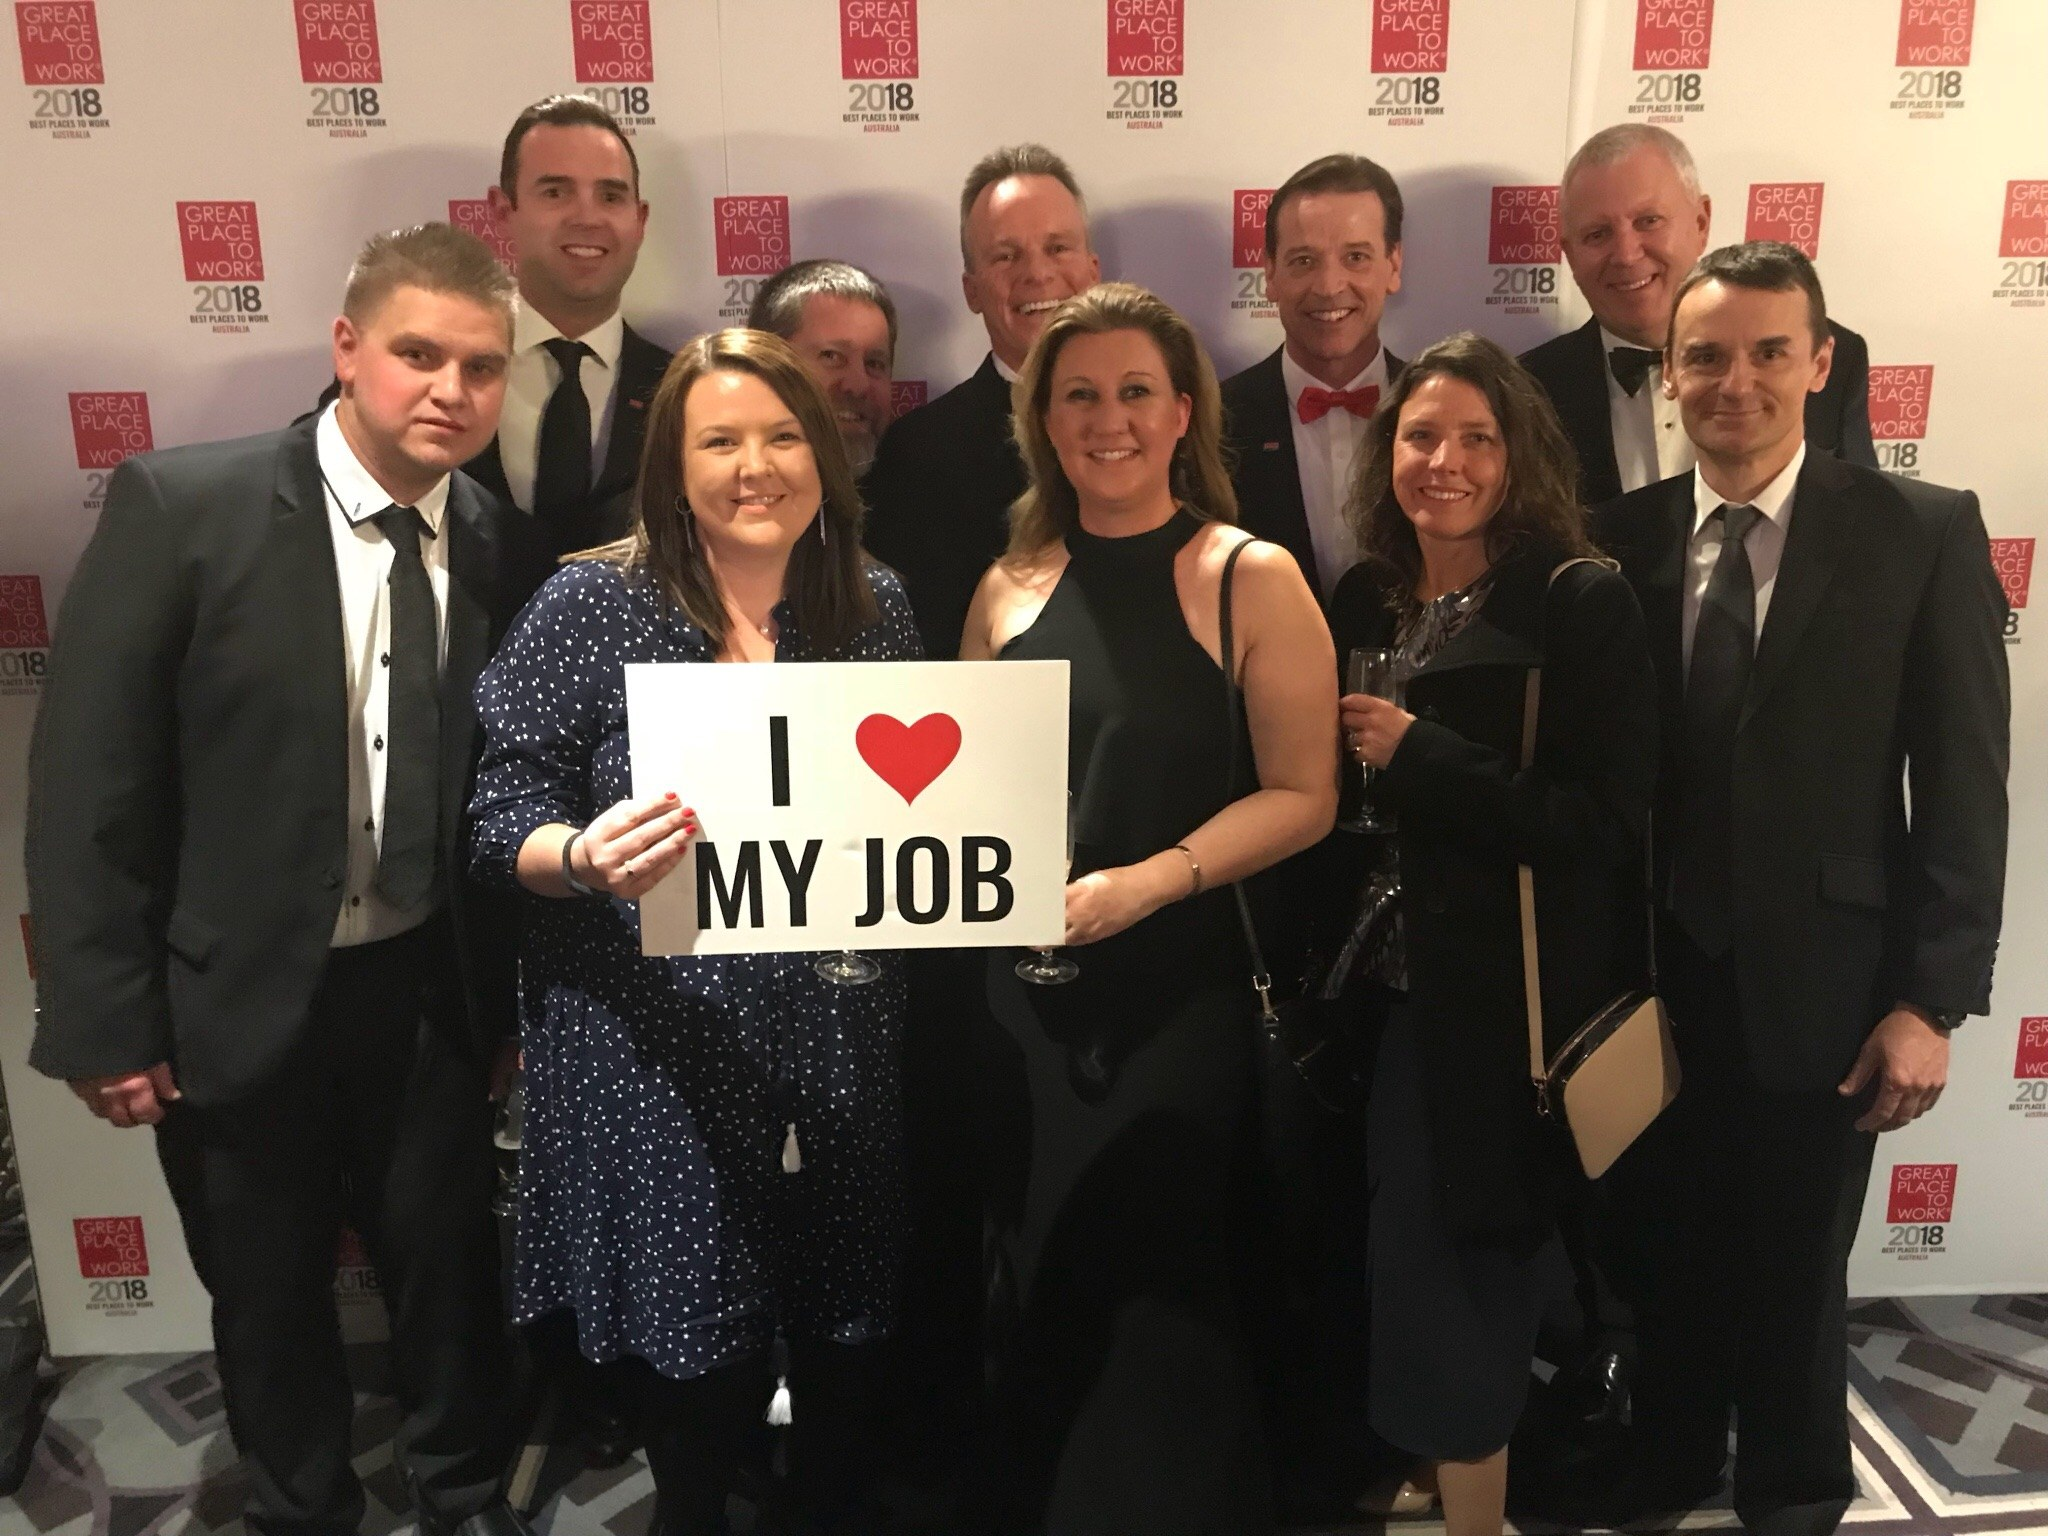 Kennards Hire Ranks in Top 10 in the 2018 Best Places To Work Study